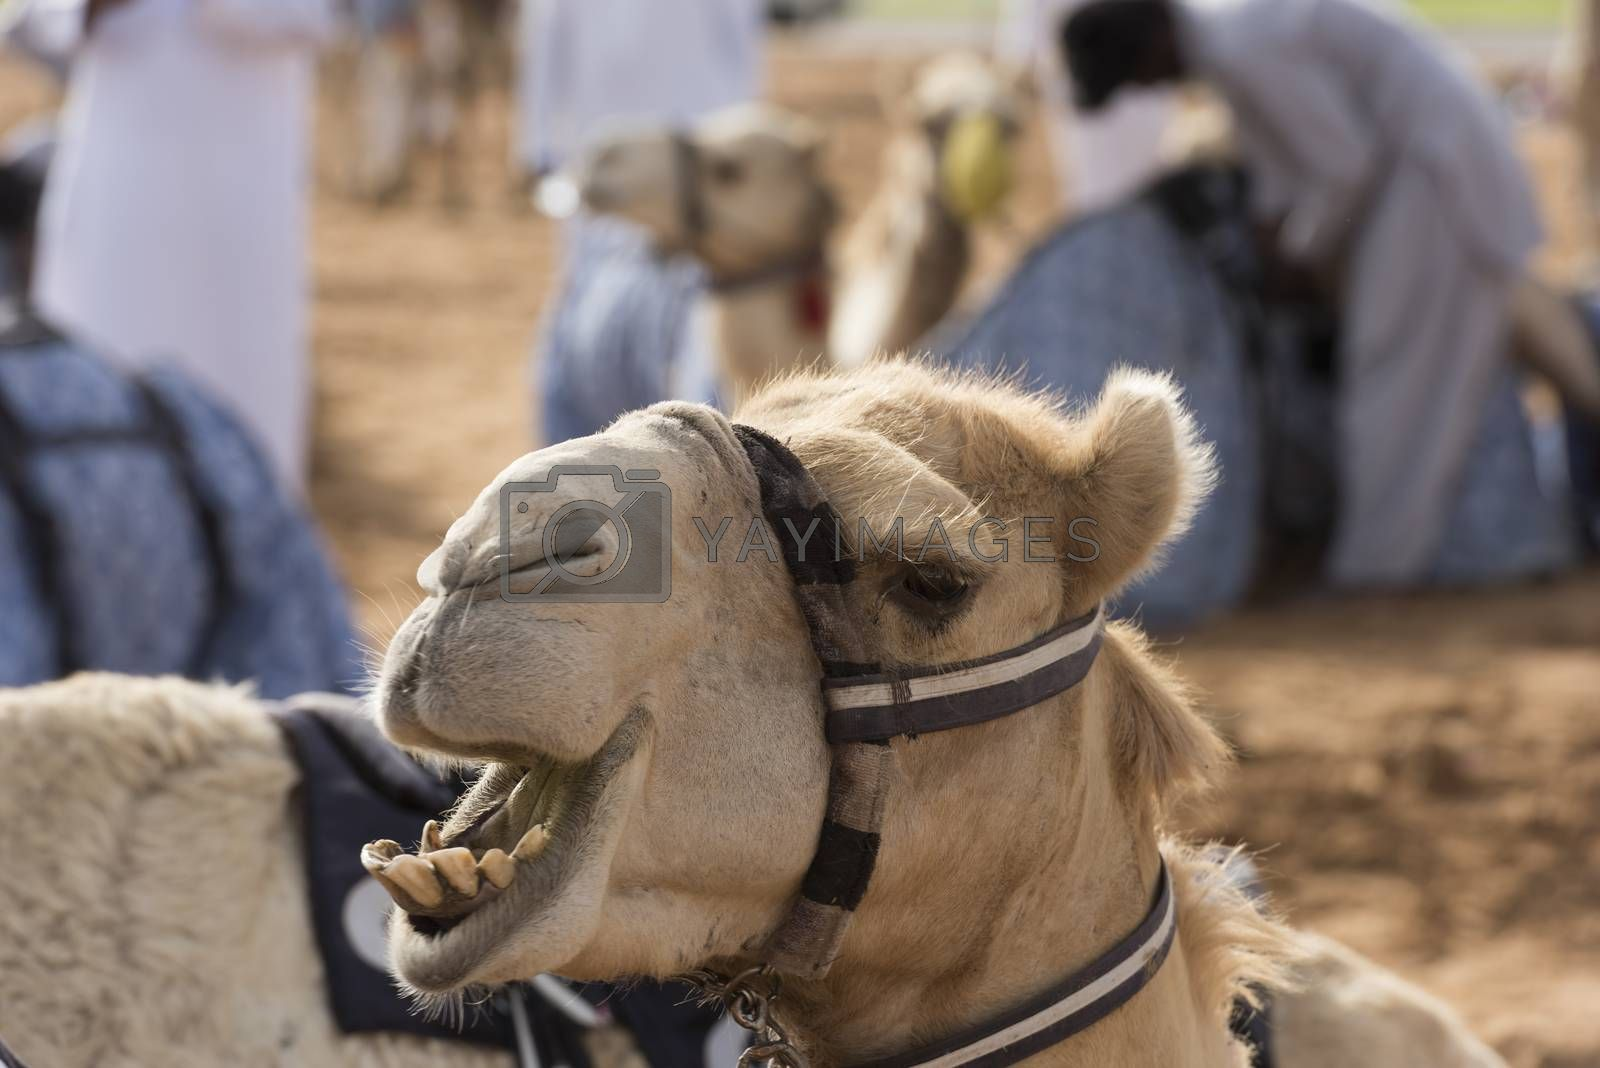 Dubai Camel Race track, UAE by GABIS